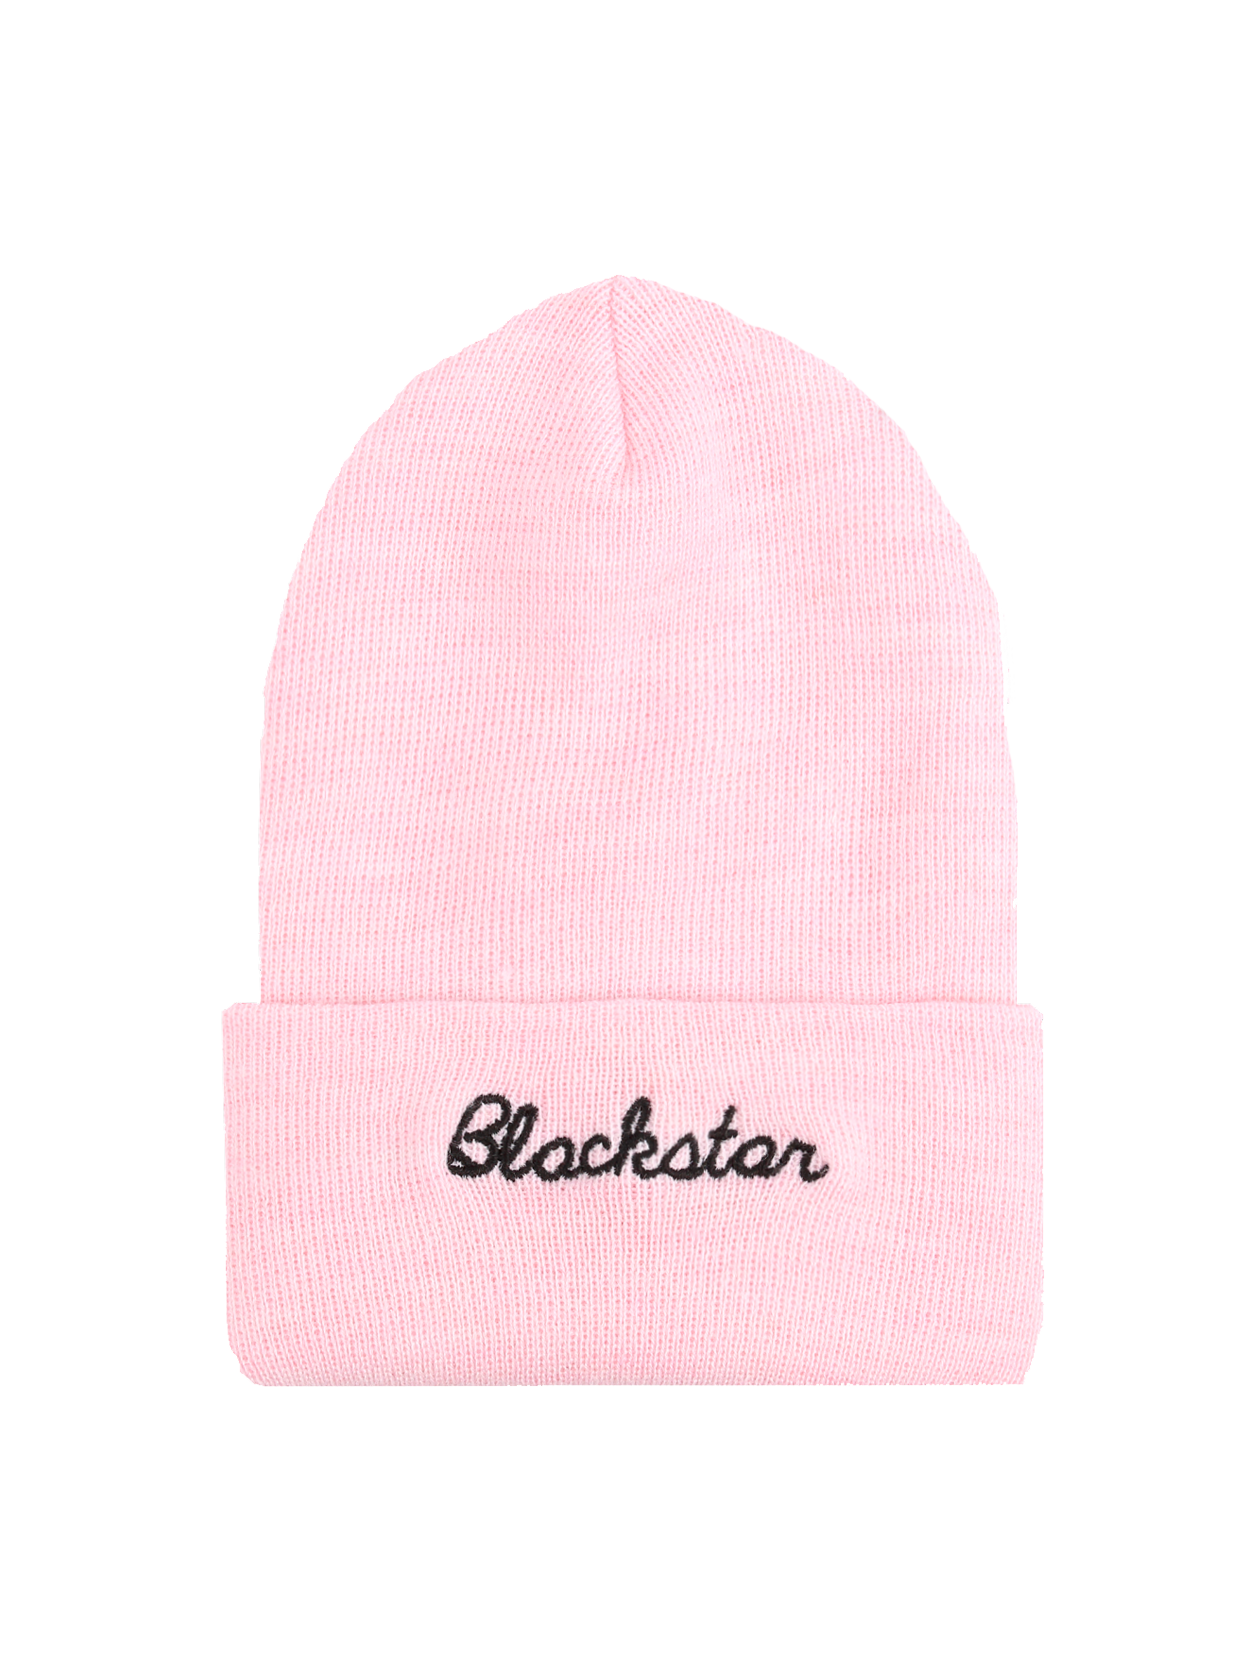 Unisex beanie Pastel BSUnisex beanie in by Black Star Wear. Turn-up brim with Blackstar embroidery. 100% acrylic. One size. Perfect for winter. Avaliable in pink, white and beige.<br><br>size: One size<br>color: Pink<br>gender: unisex